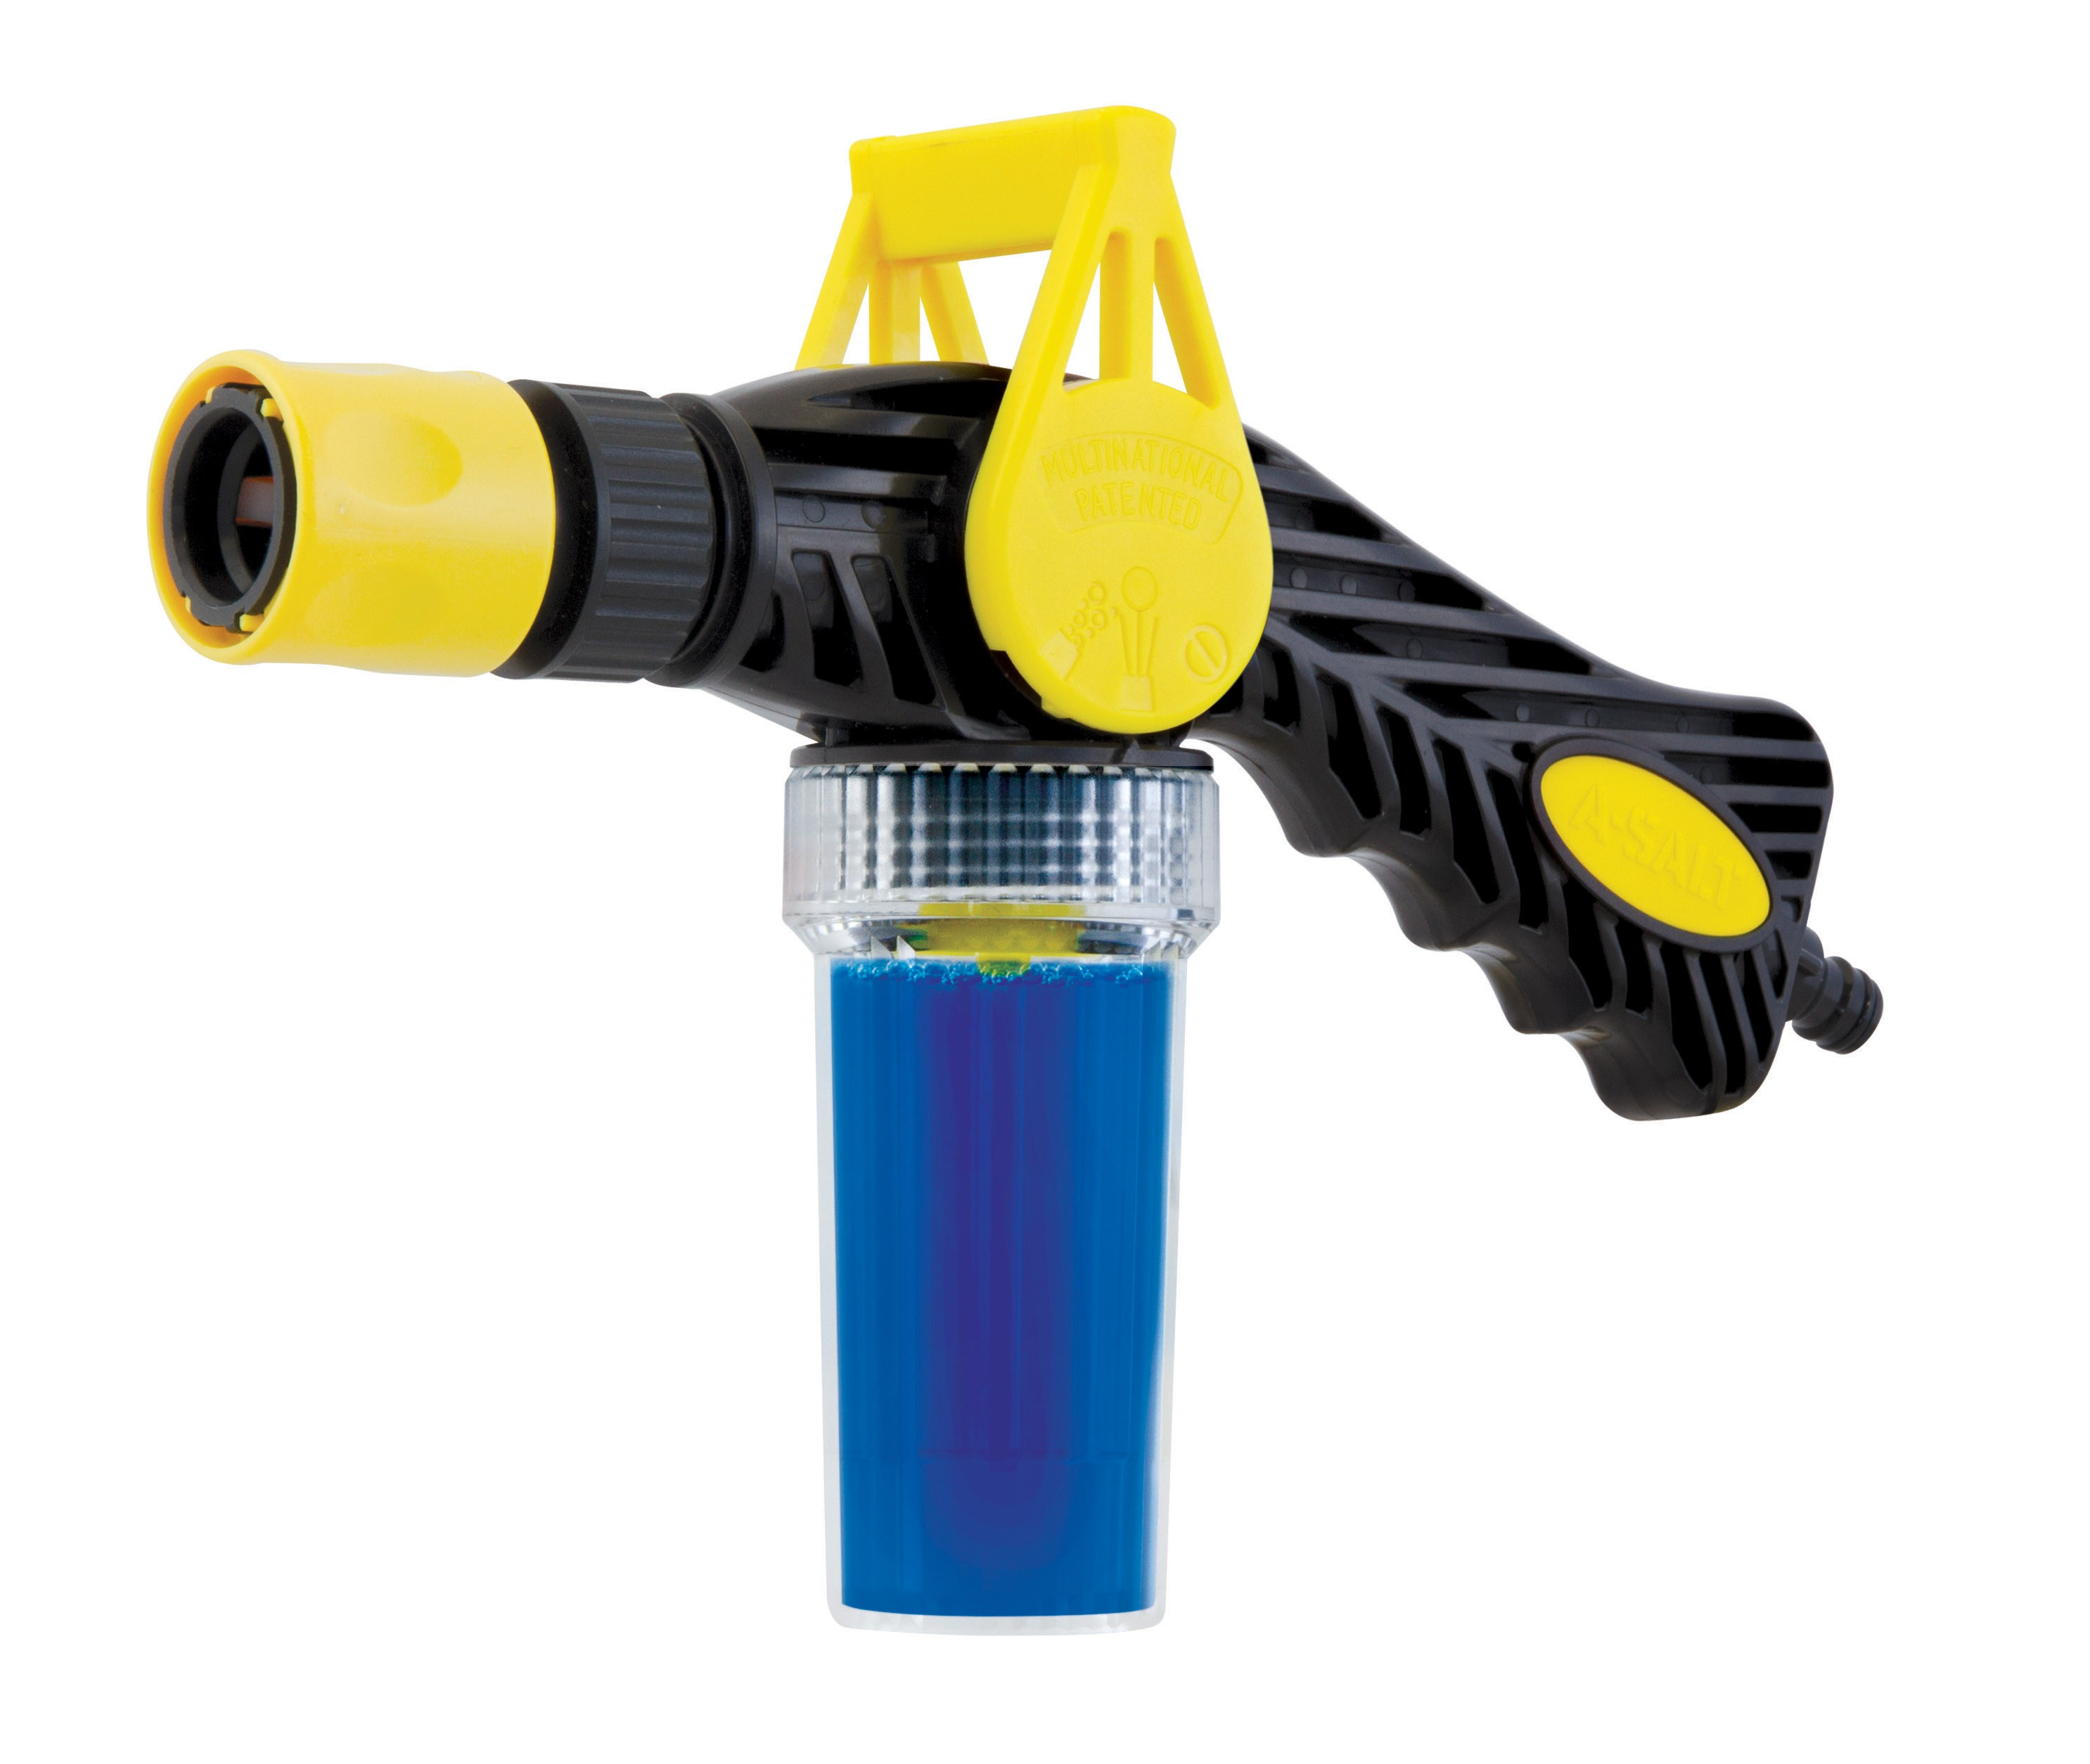 dcddc794df4a Salt-Attack Engine Flush and Spray Gun